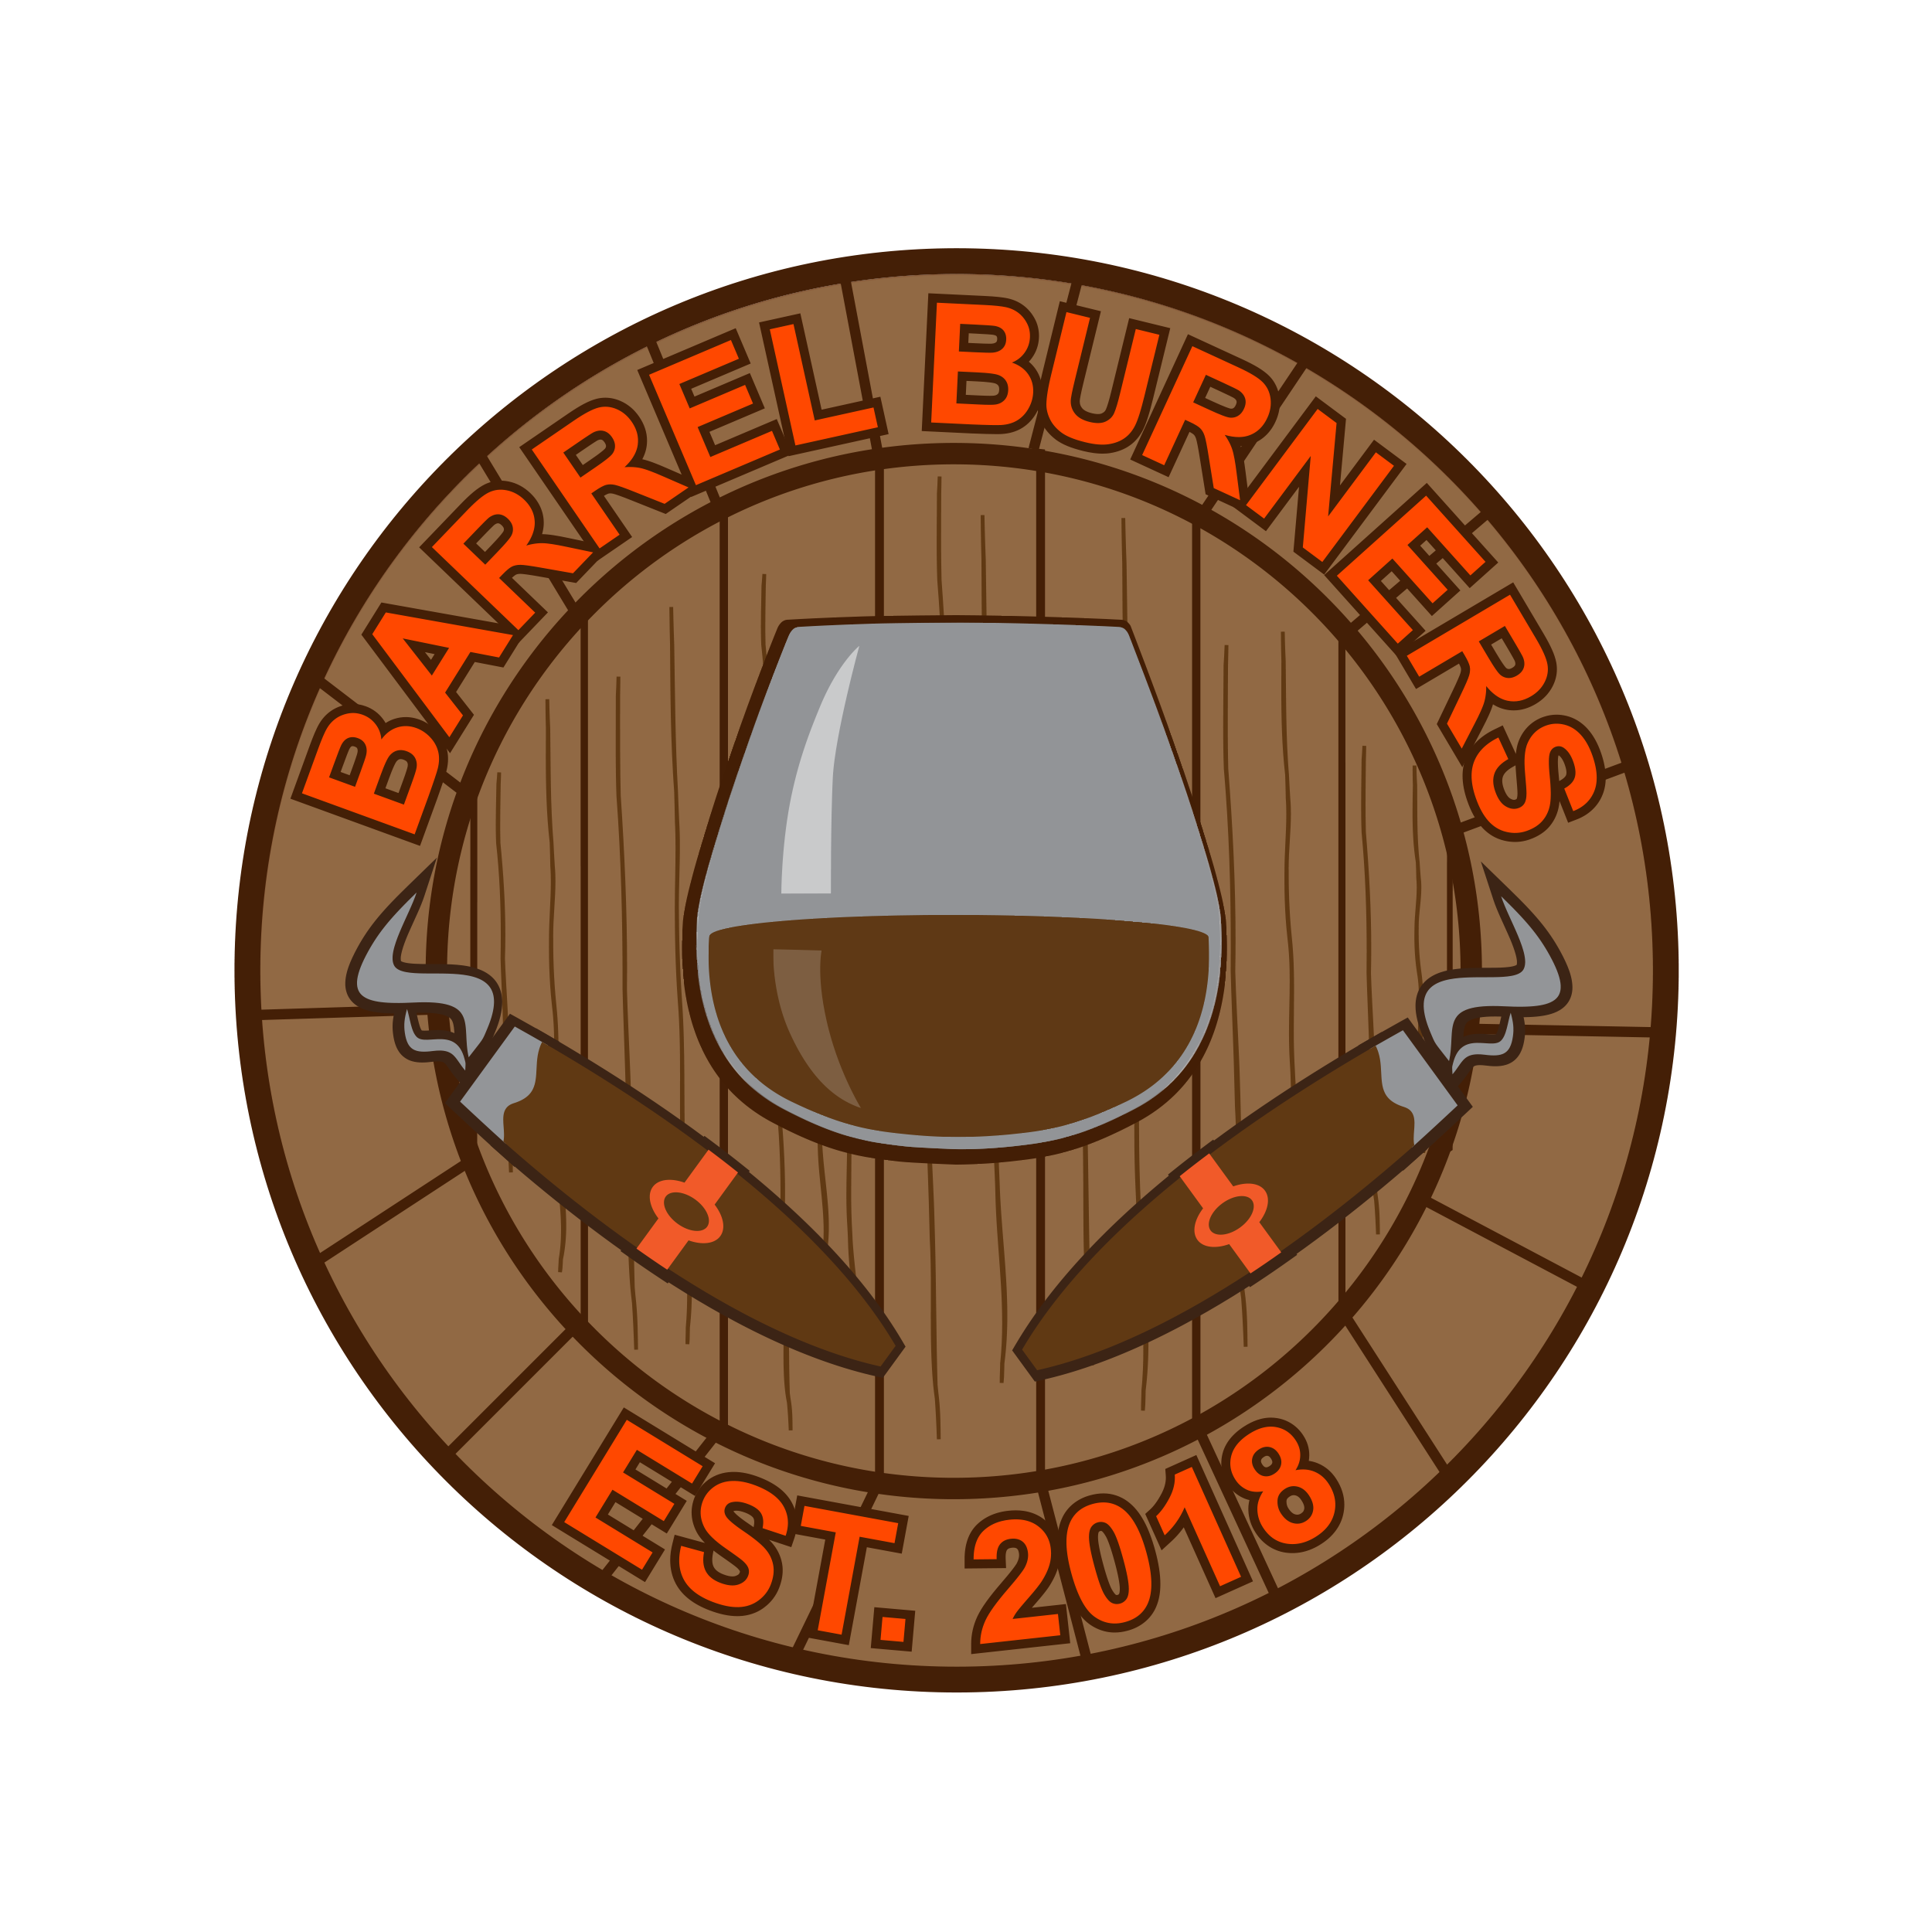 Barrel Burners